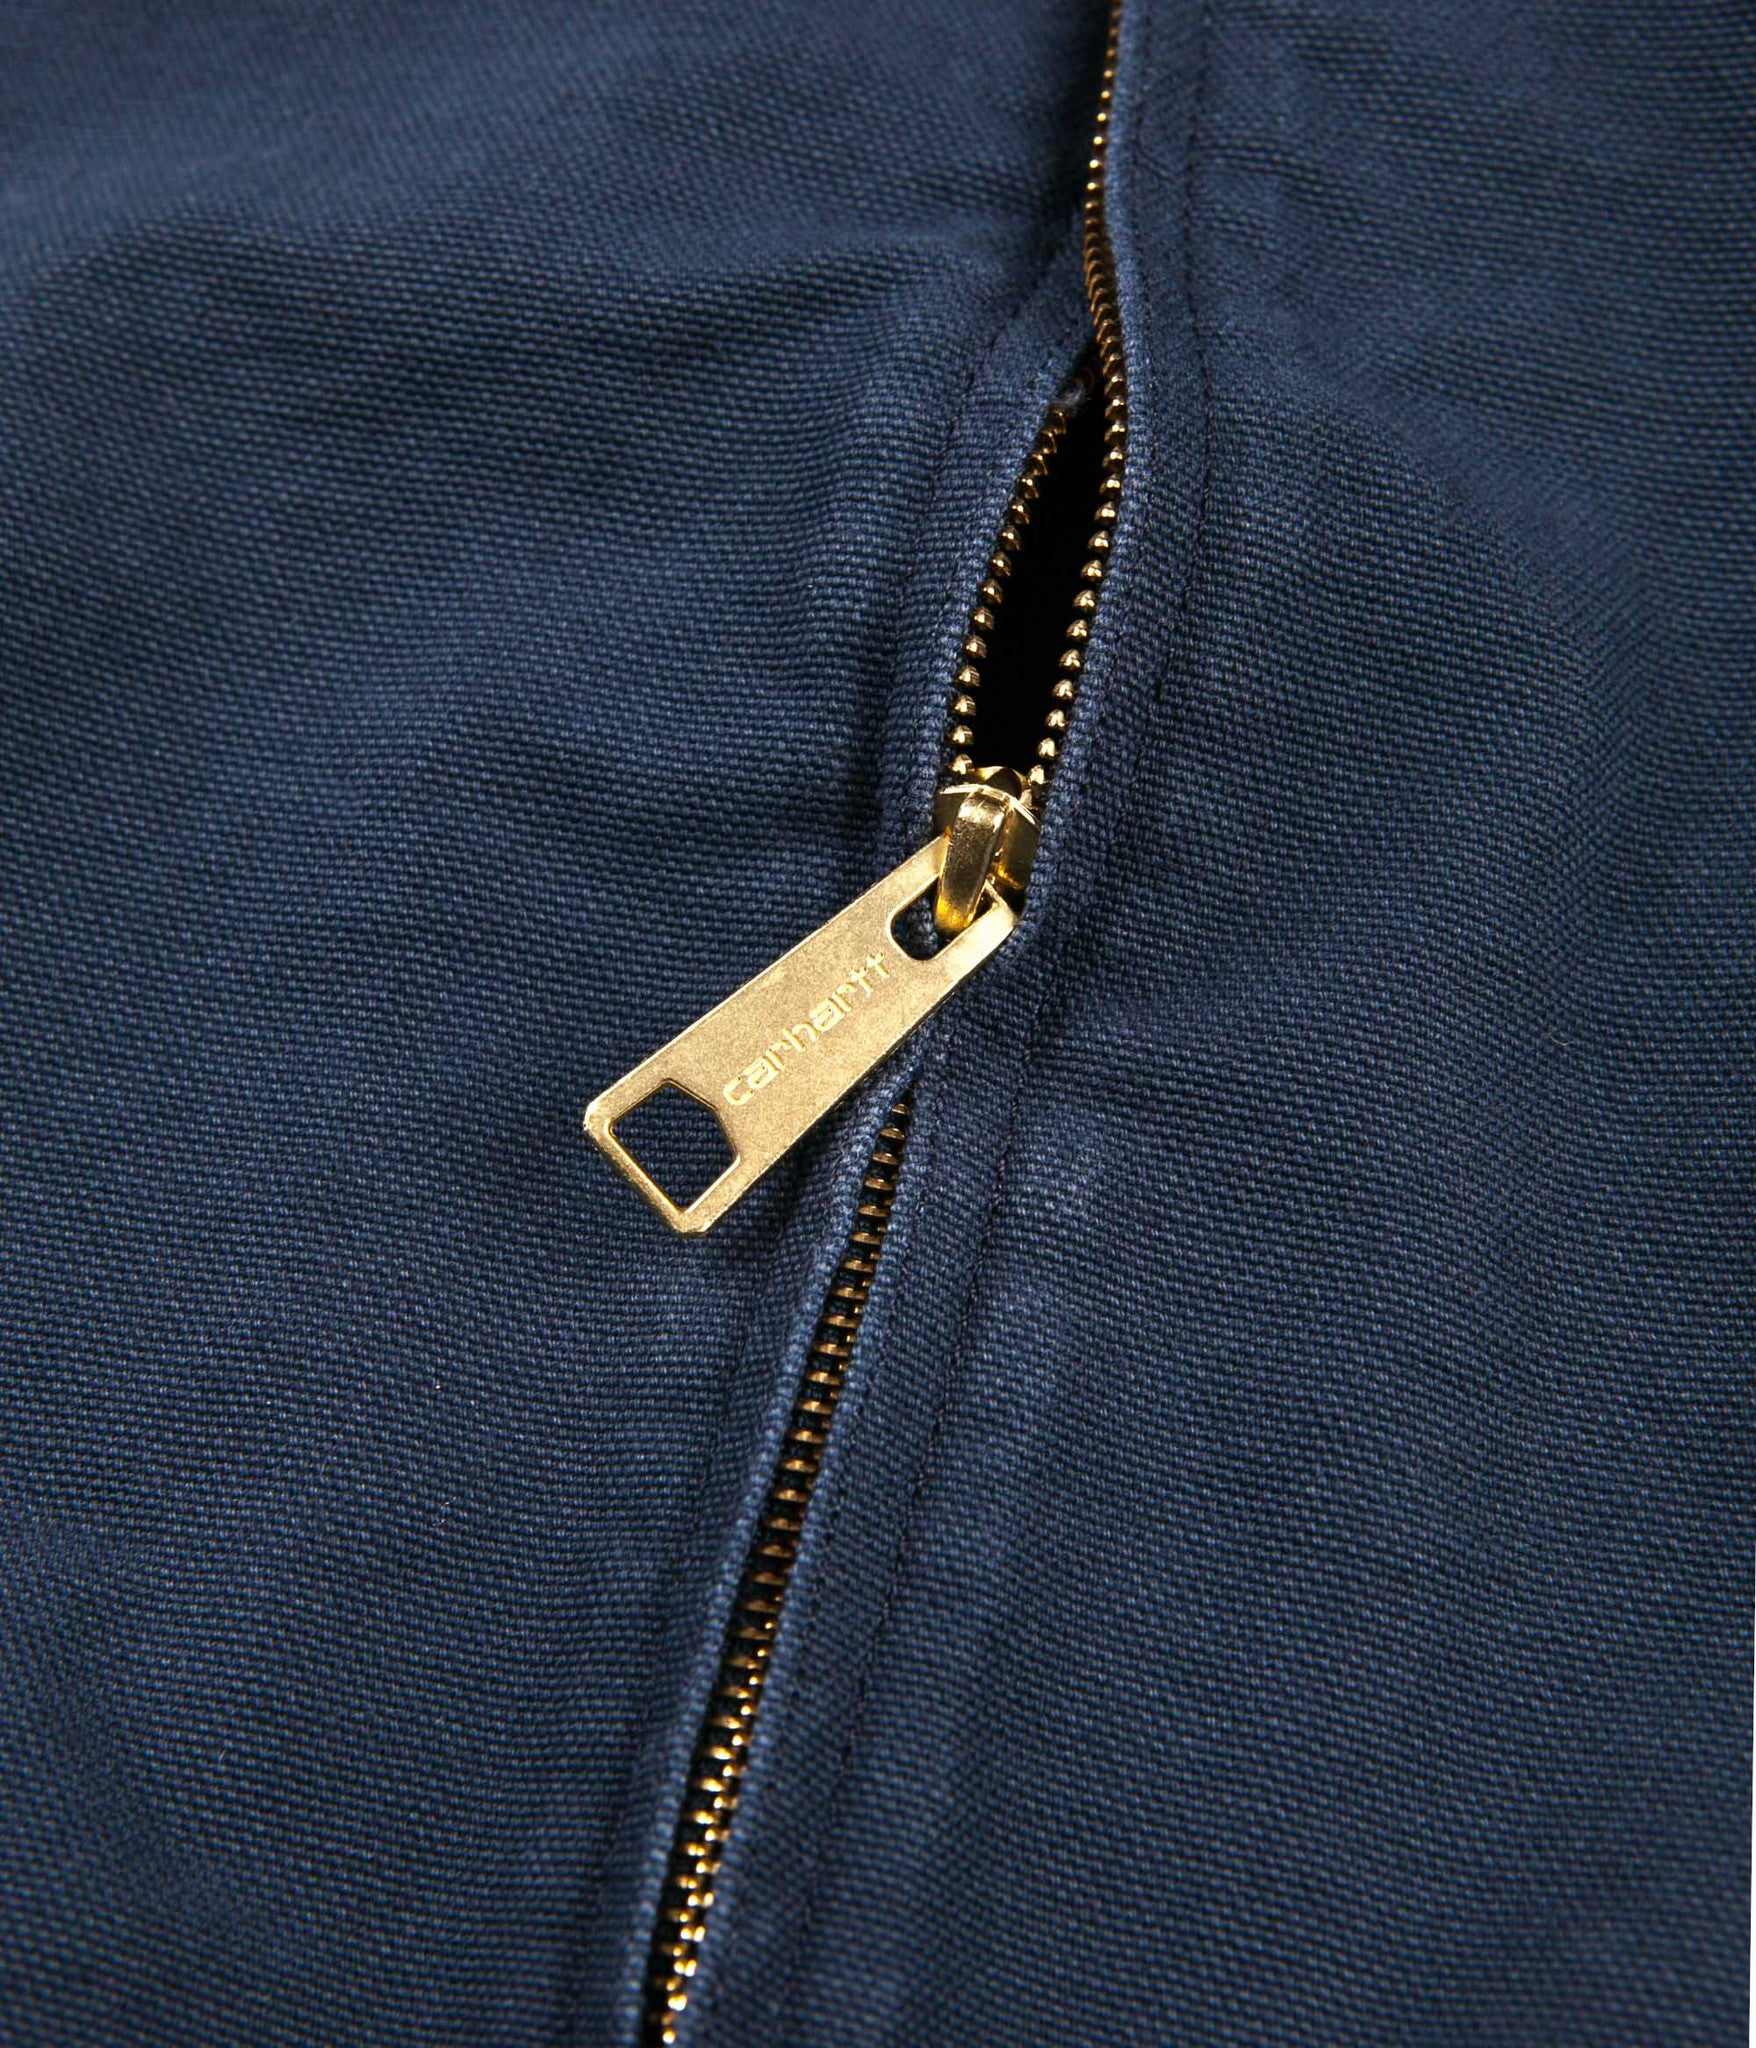 Carhartt Detroit Jacket - Navy / Black Rinsed